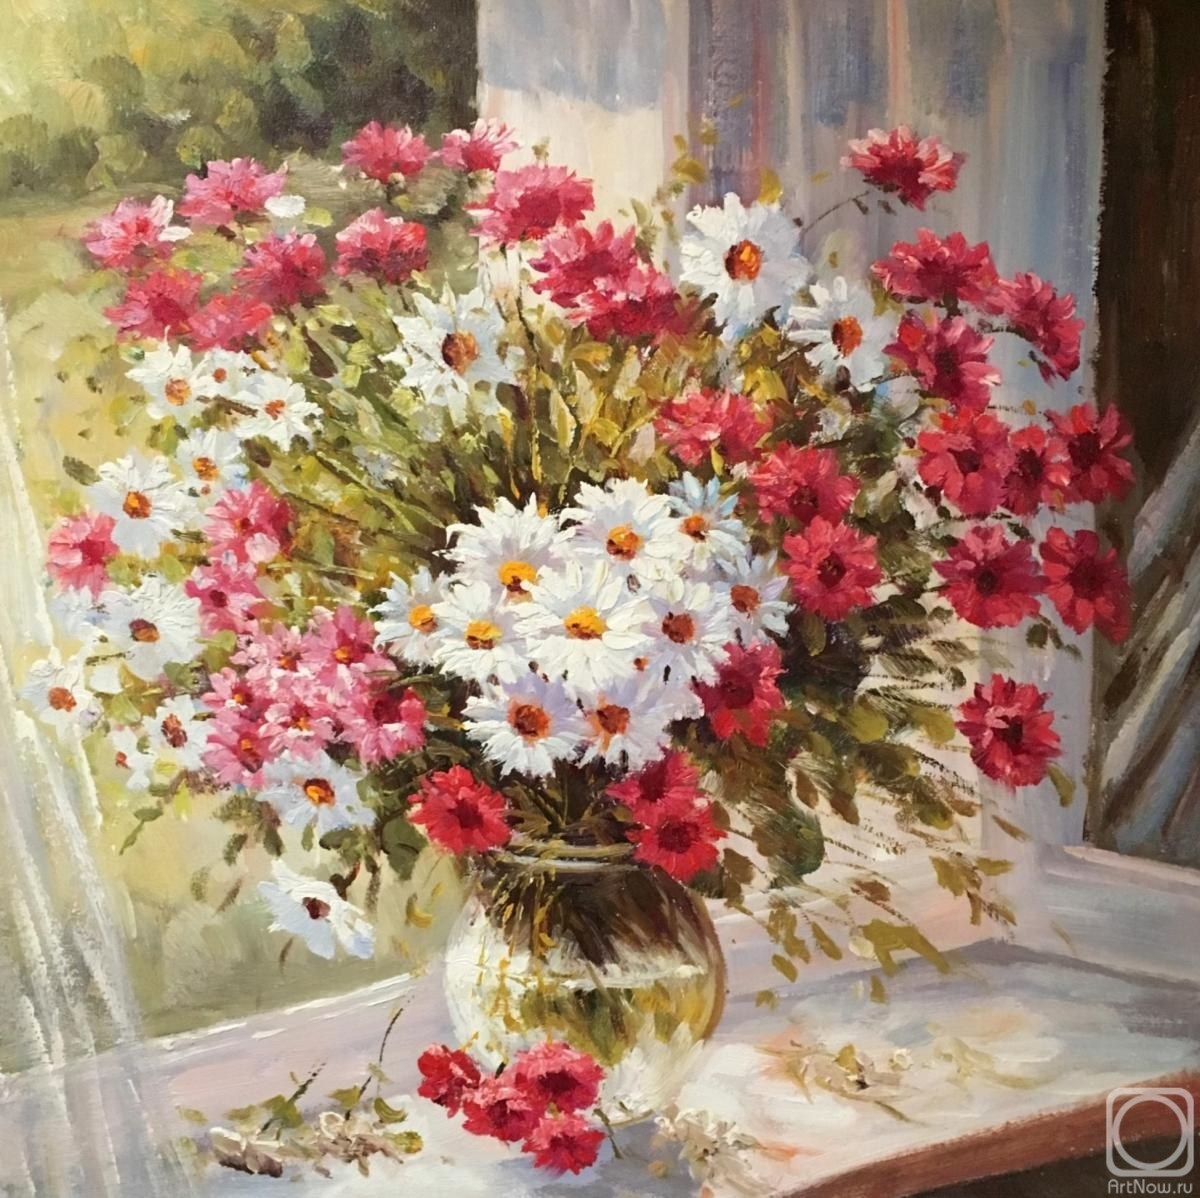 Dzhanilyatii Antonio. Summer flowers